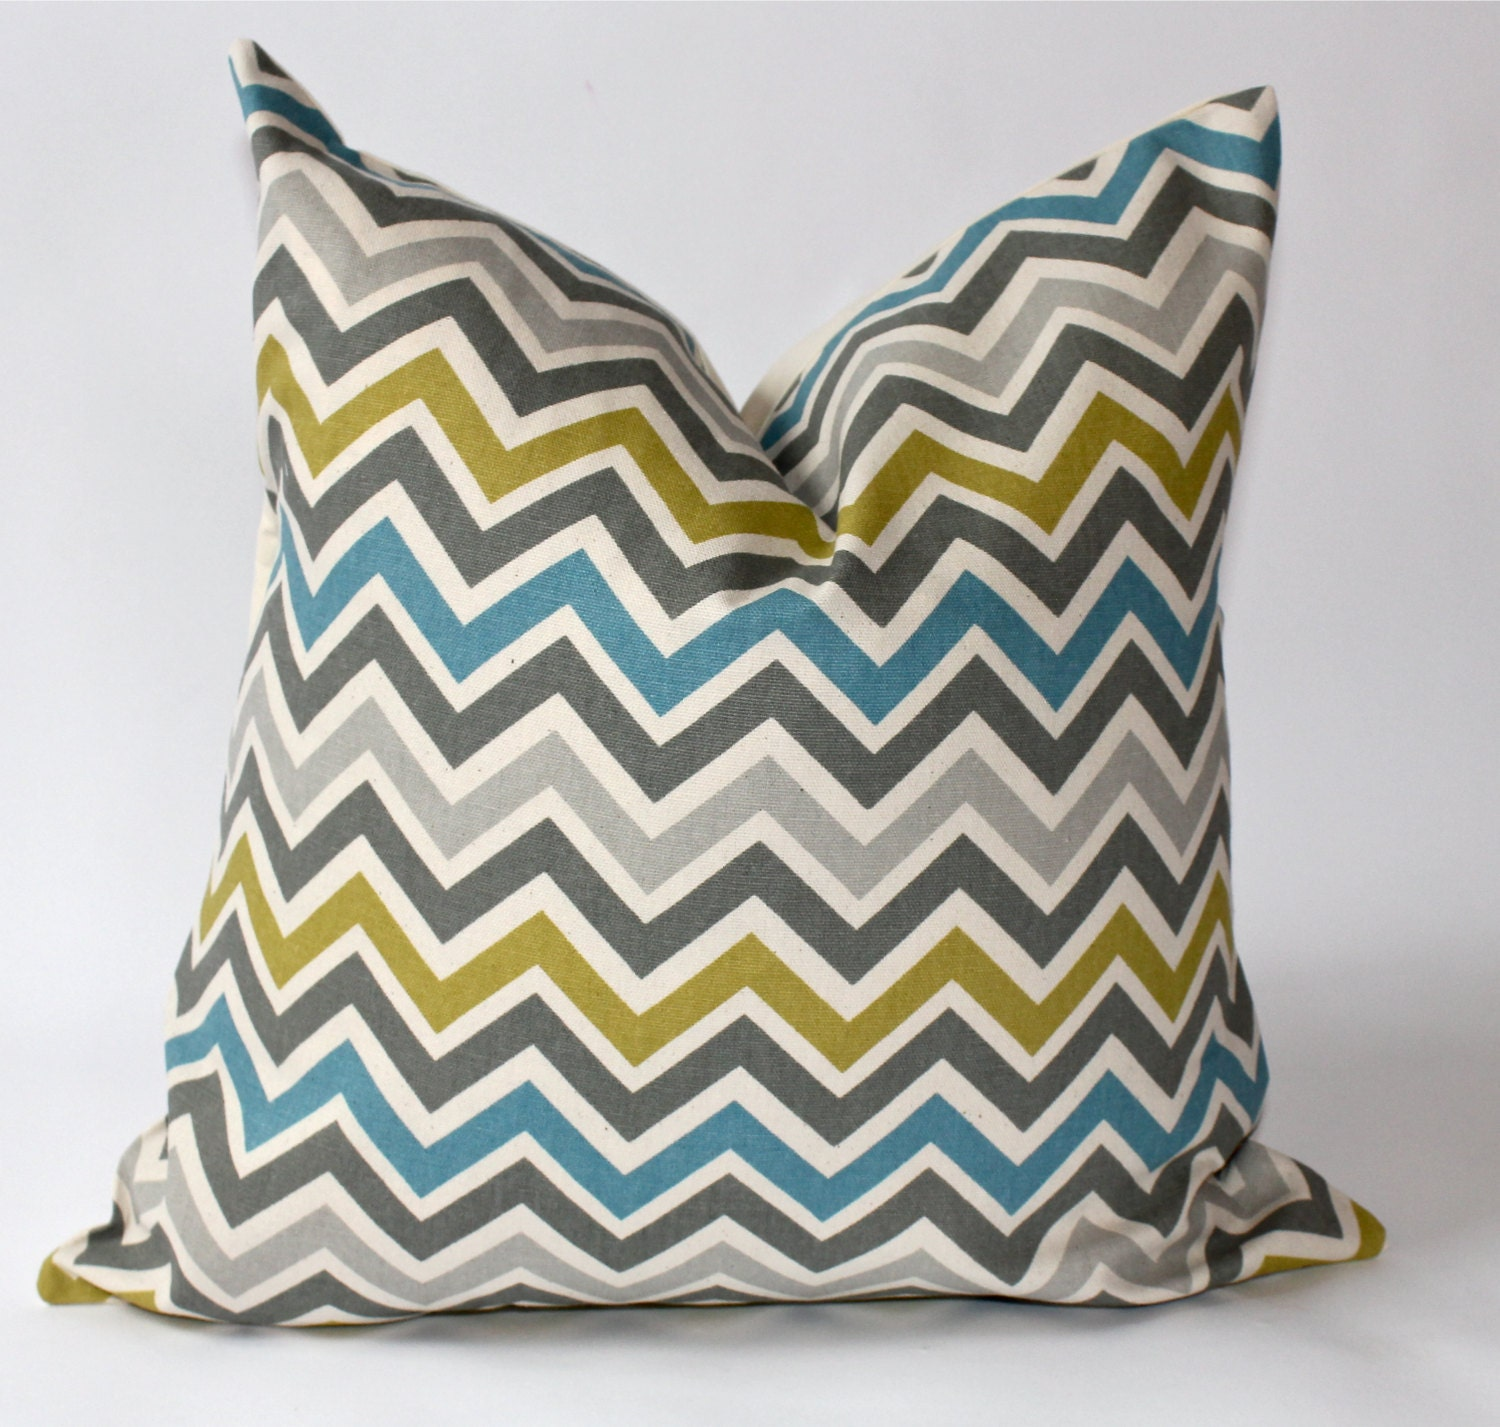 Throw Pillow Covers 18 Inches : 18 x 18 inch Decorative Pillow Cover Chevron by ThePillowPalette